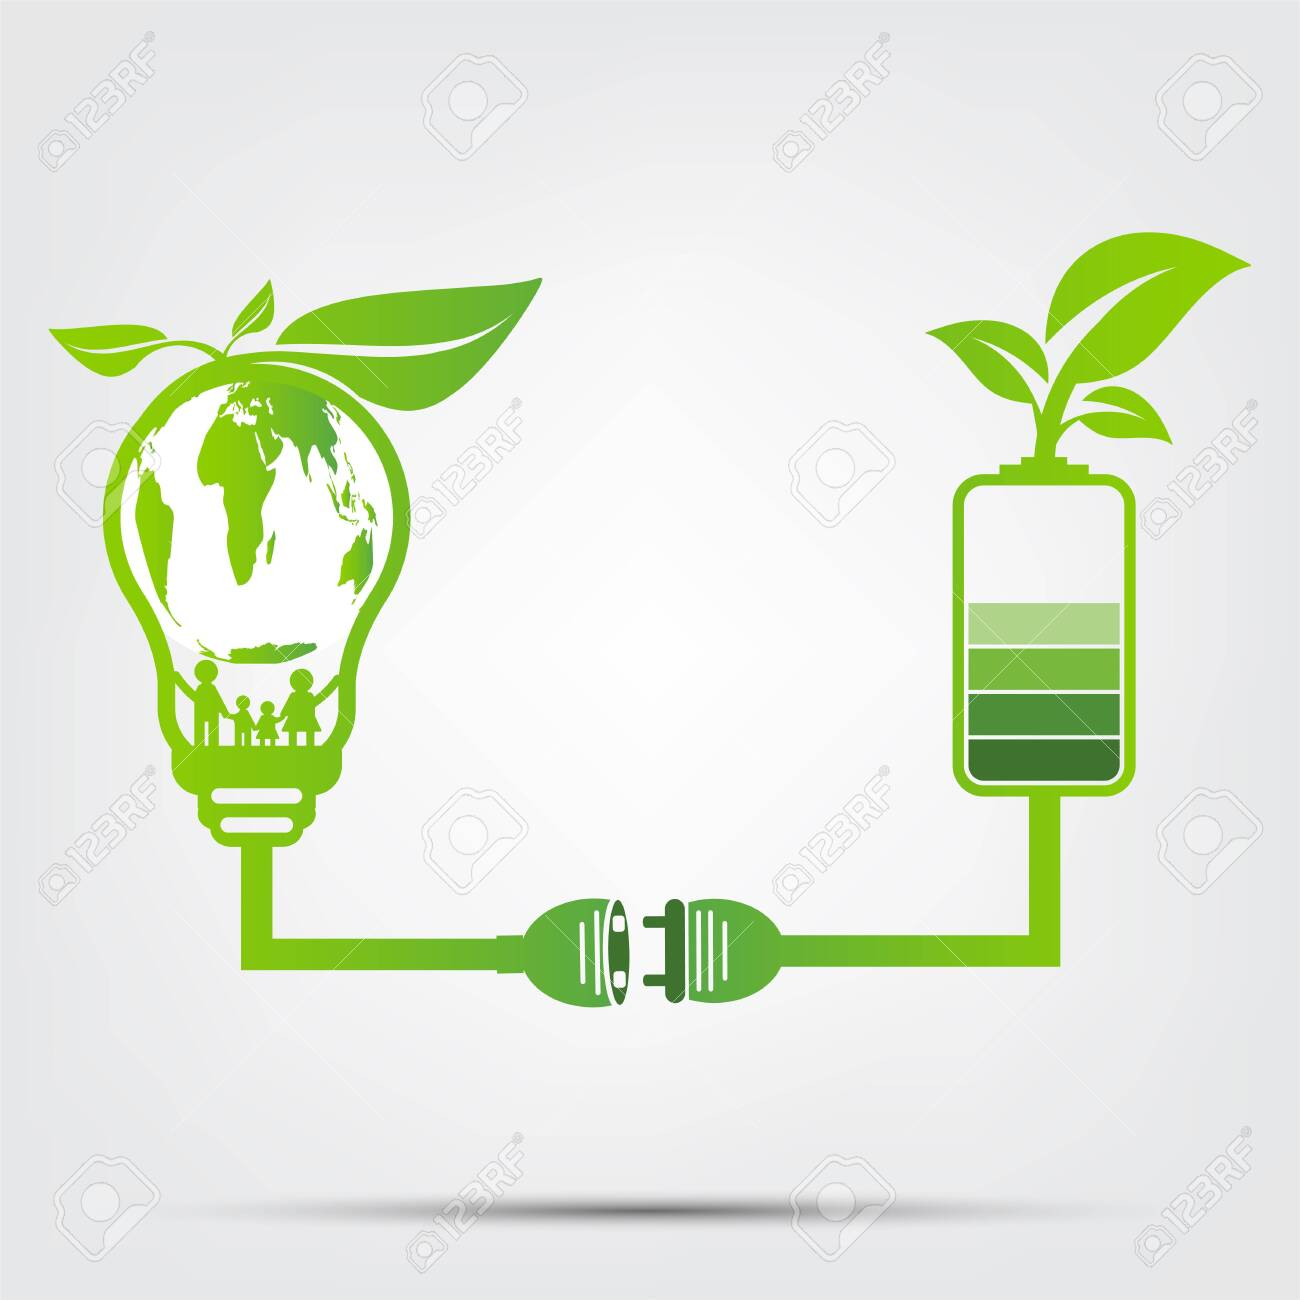 family ecology concept in the world is in the energy saving light bulb green.Power plug leaves ecology battery green.vector illustration - 122413092